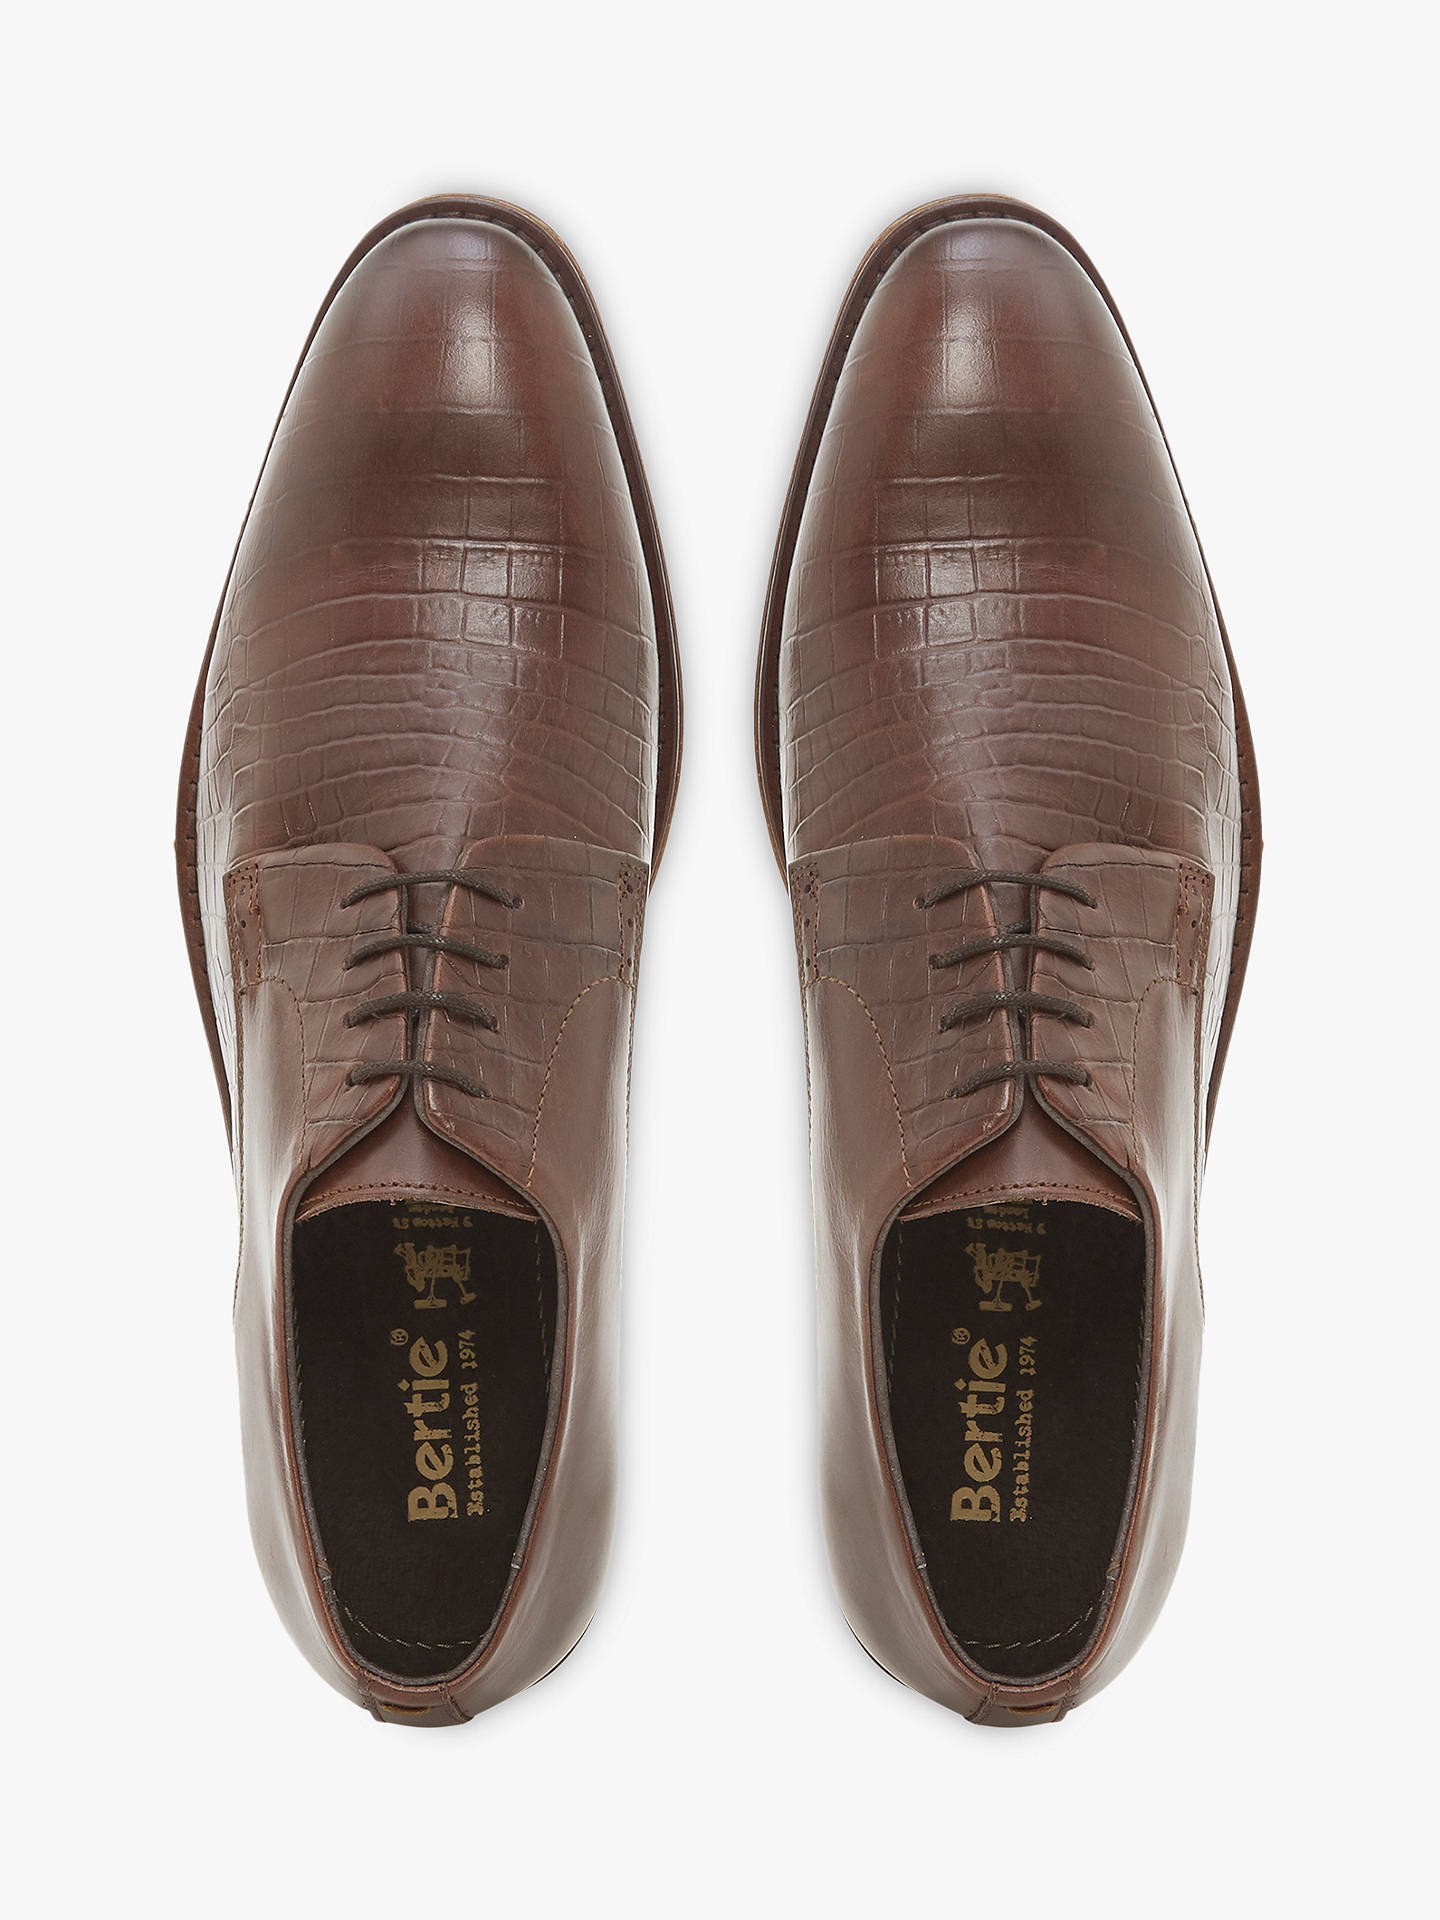 BuyBertie Portt Textured Derby Shoes, Brown, 6 Online at johnlewis.com